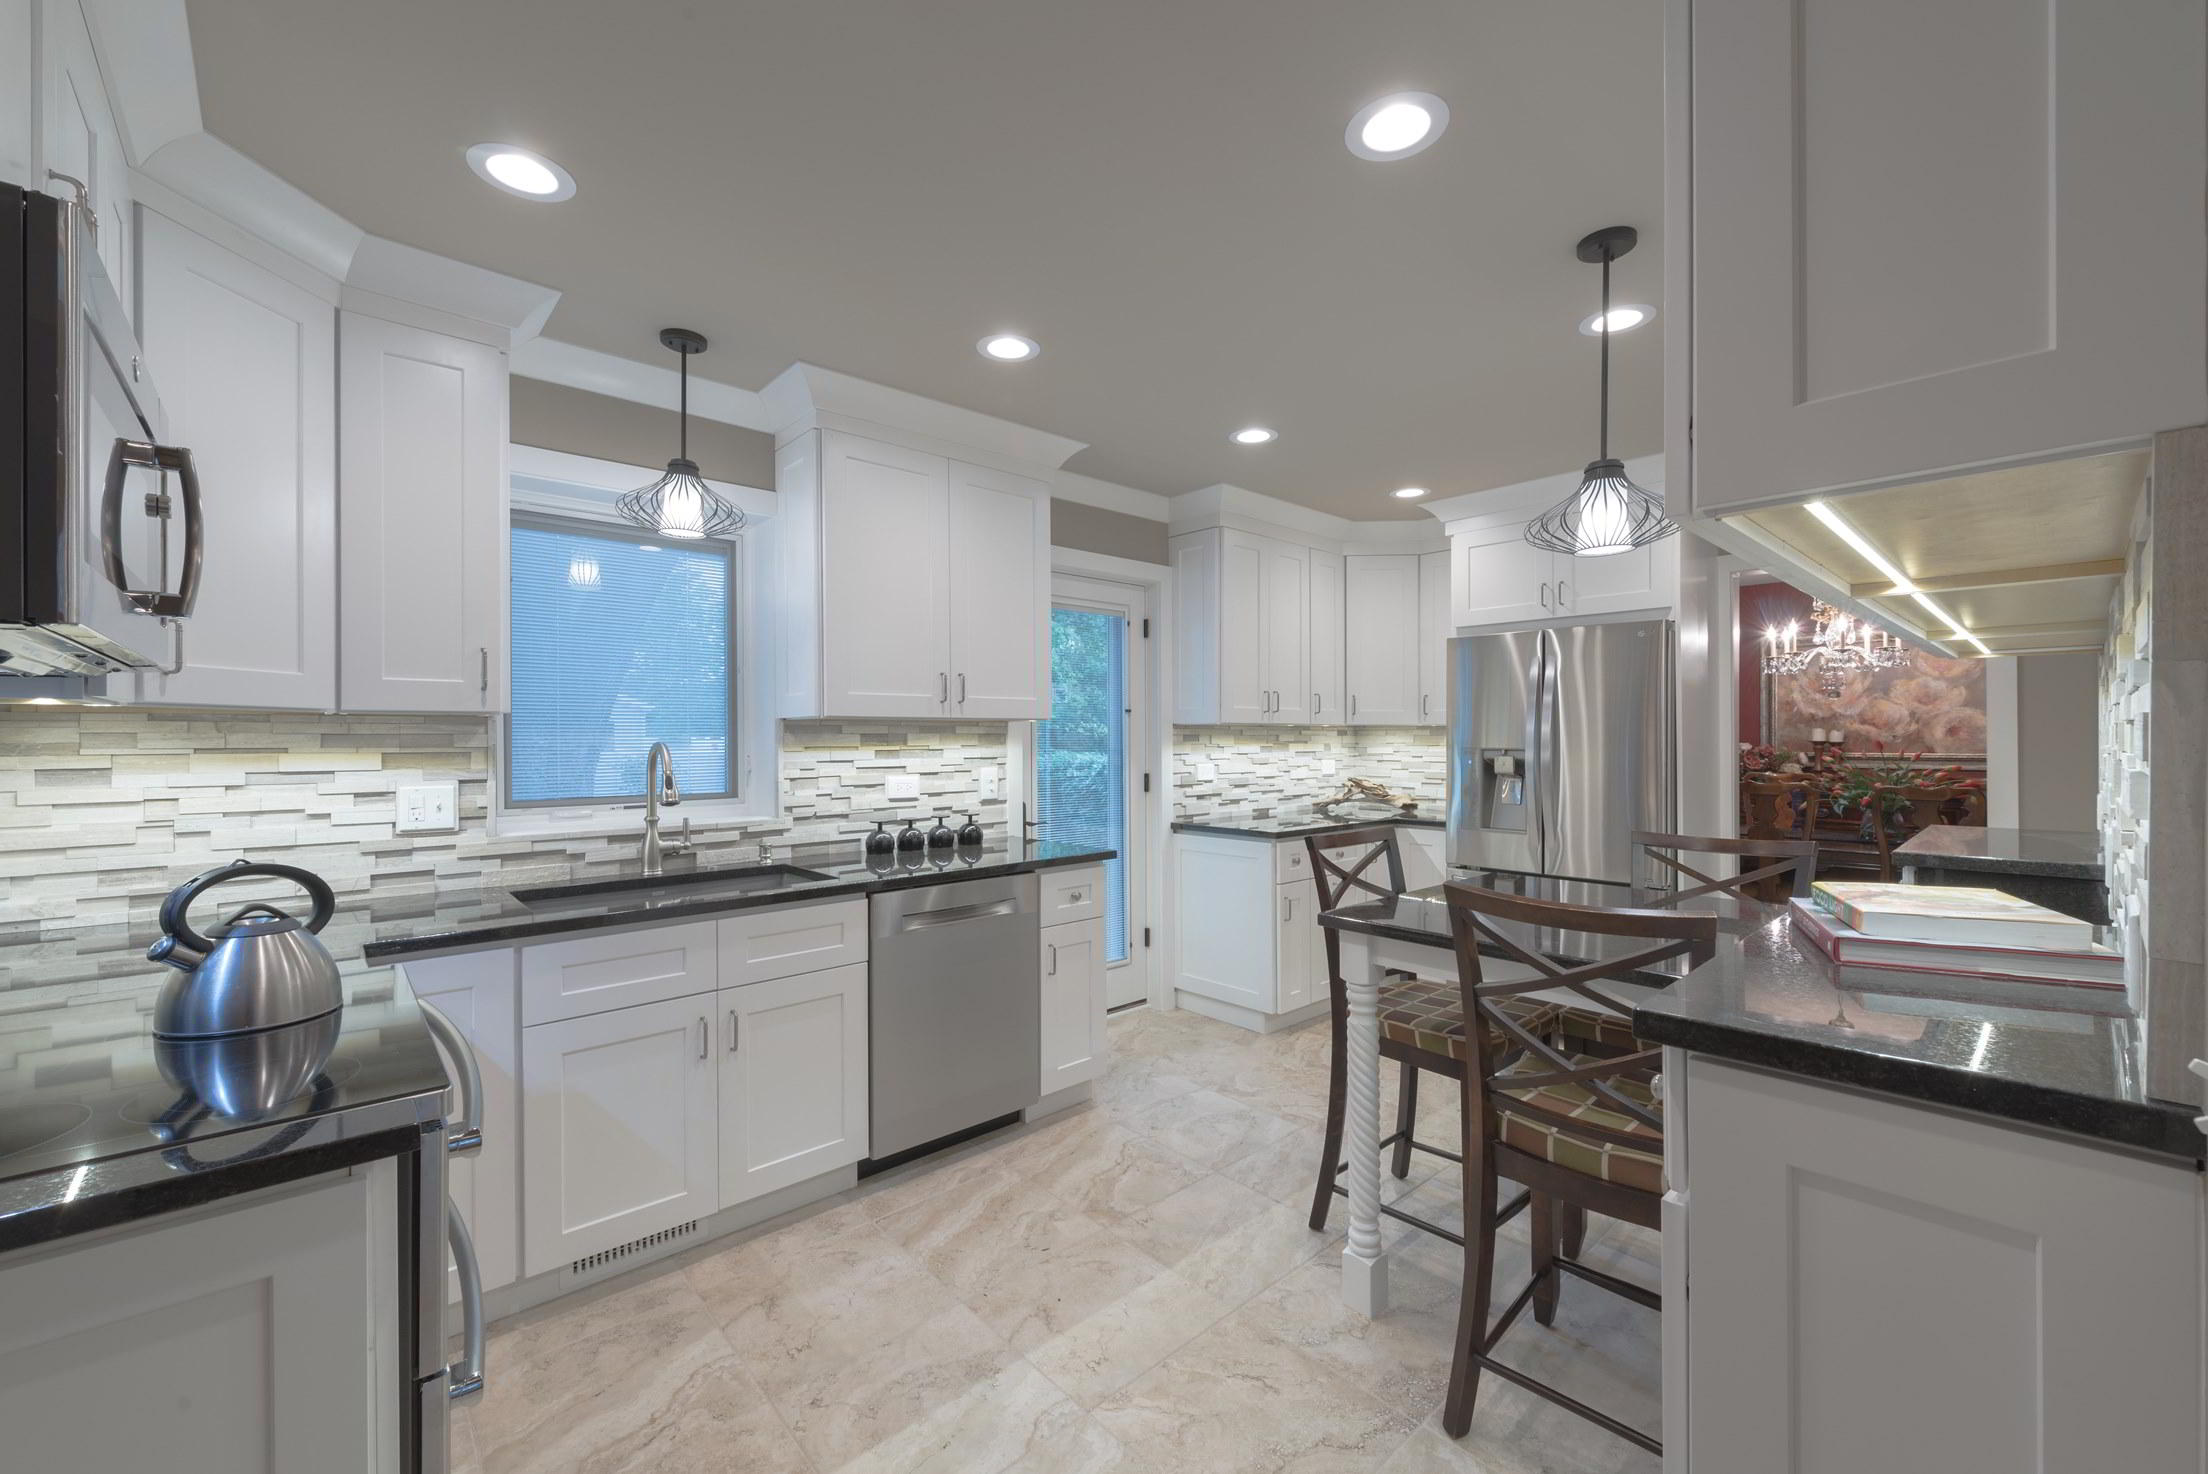 Palatine Illinois Kitchen Design Consultations, Material Selections, Kitchen Remodeling